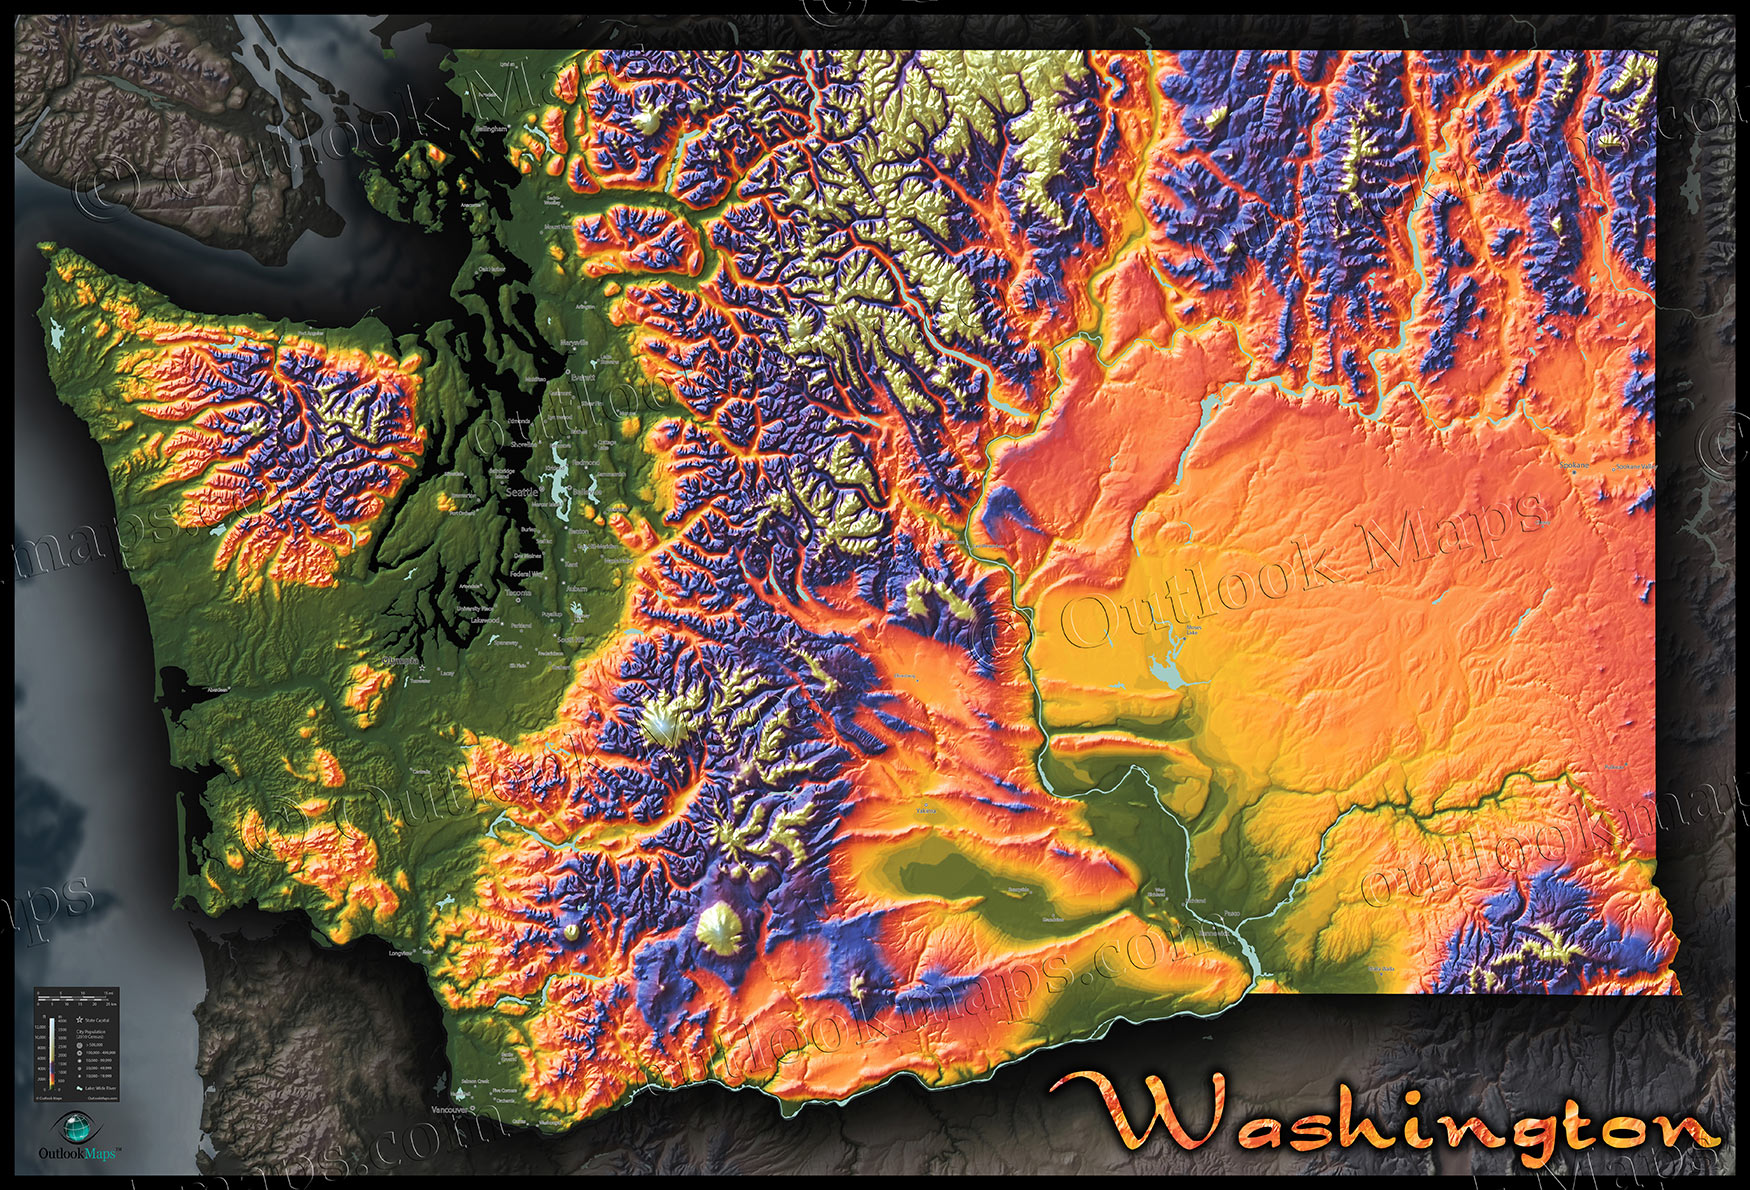 Topo map of washington state colorful mountains terrain topographic physical wall map of washington sciox Choice Image